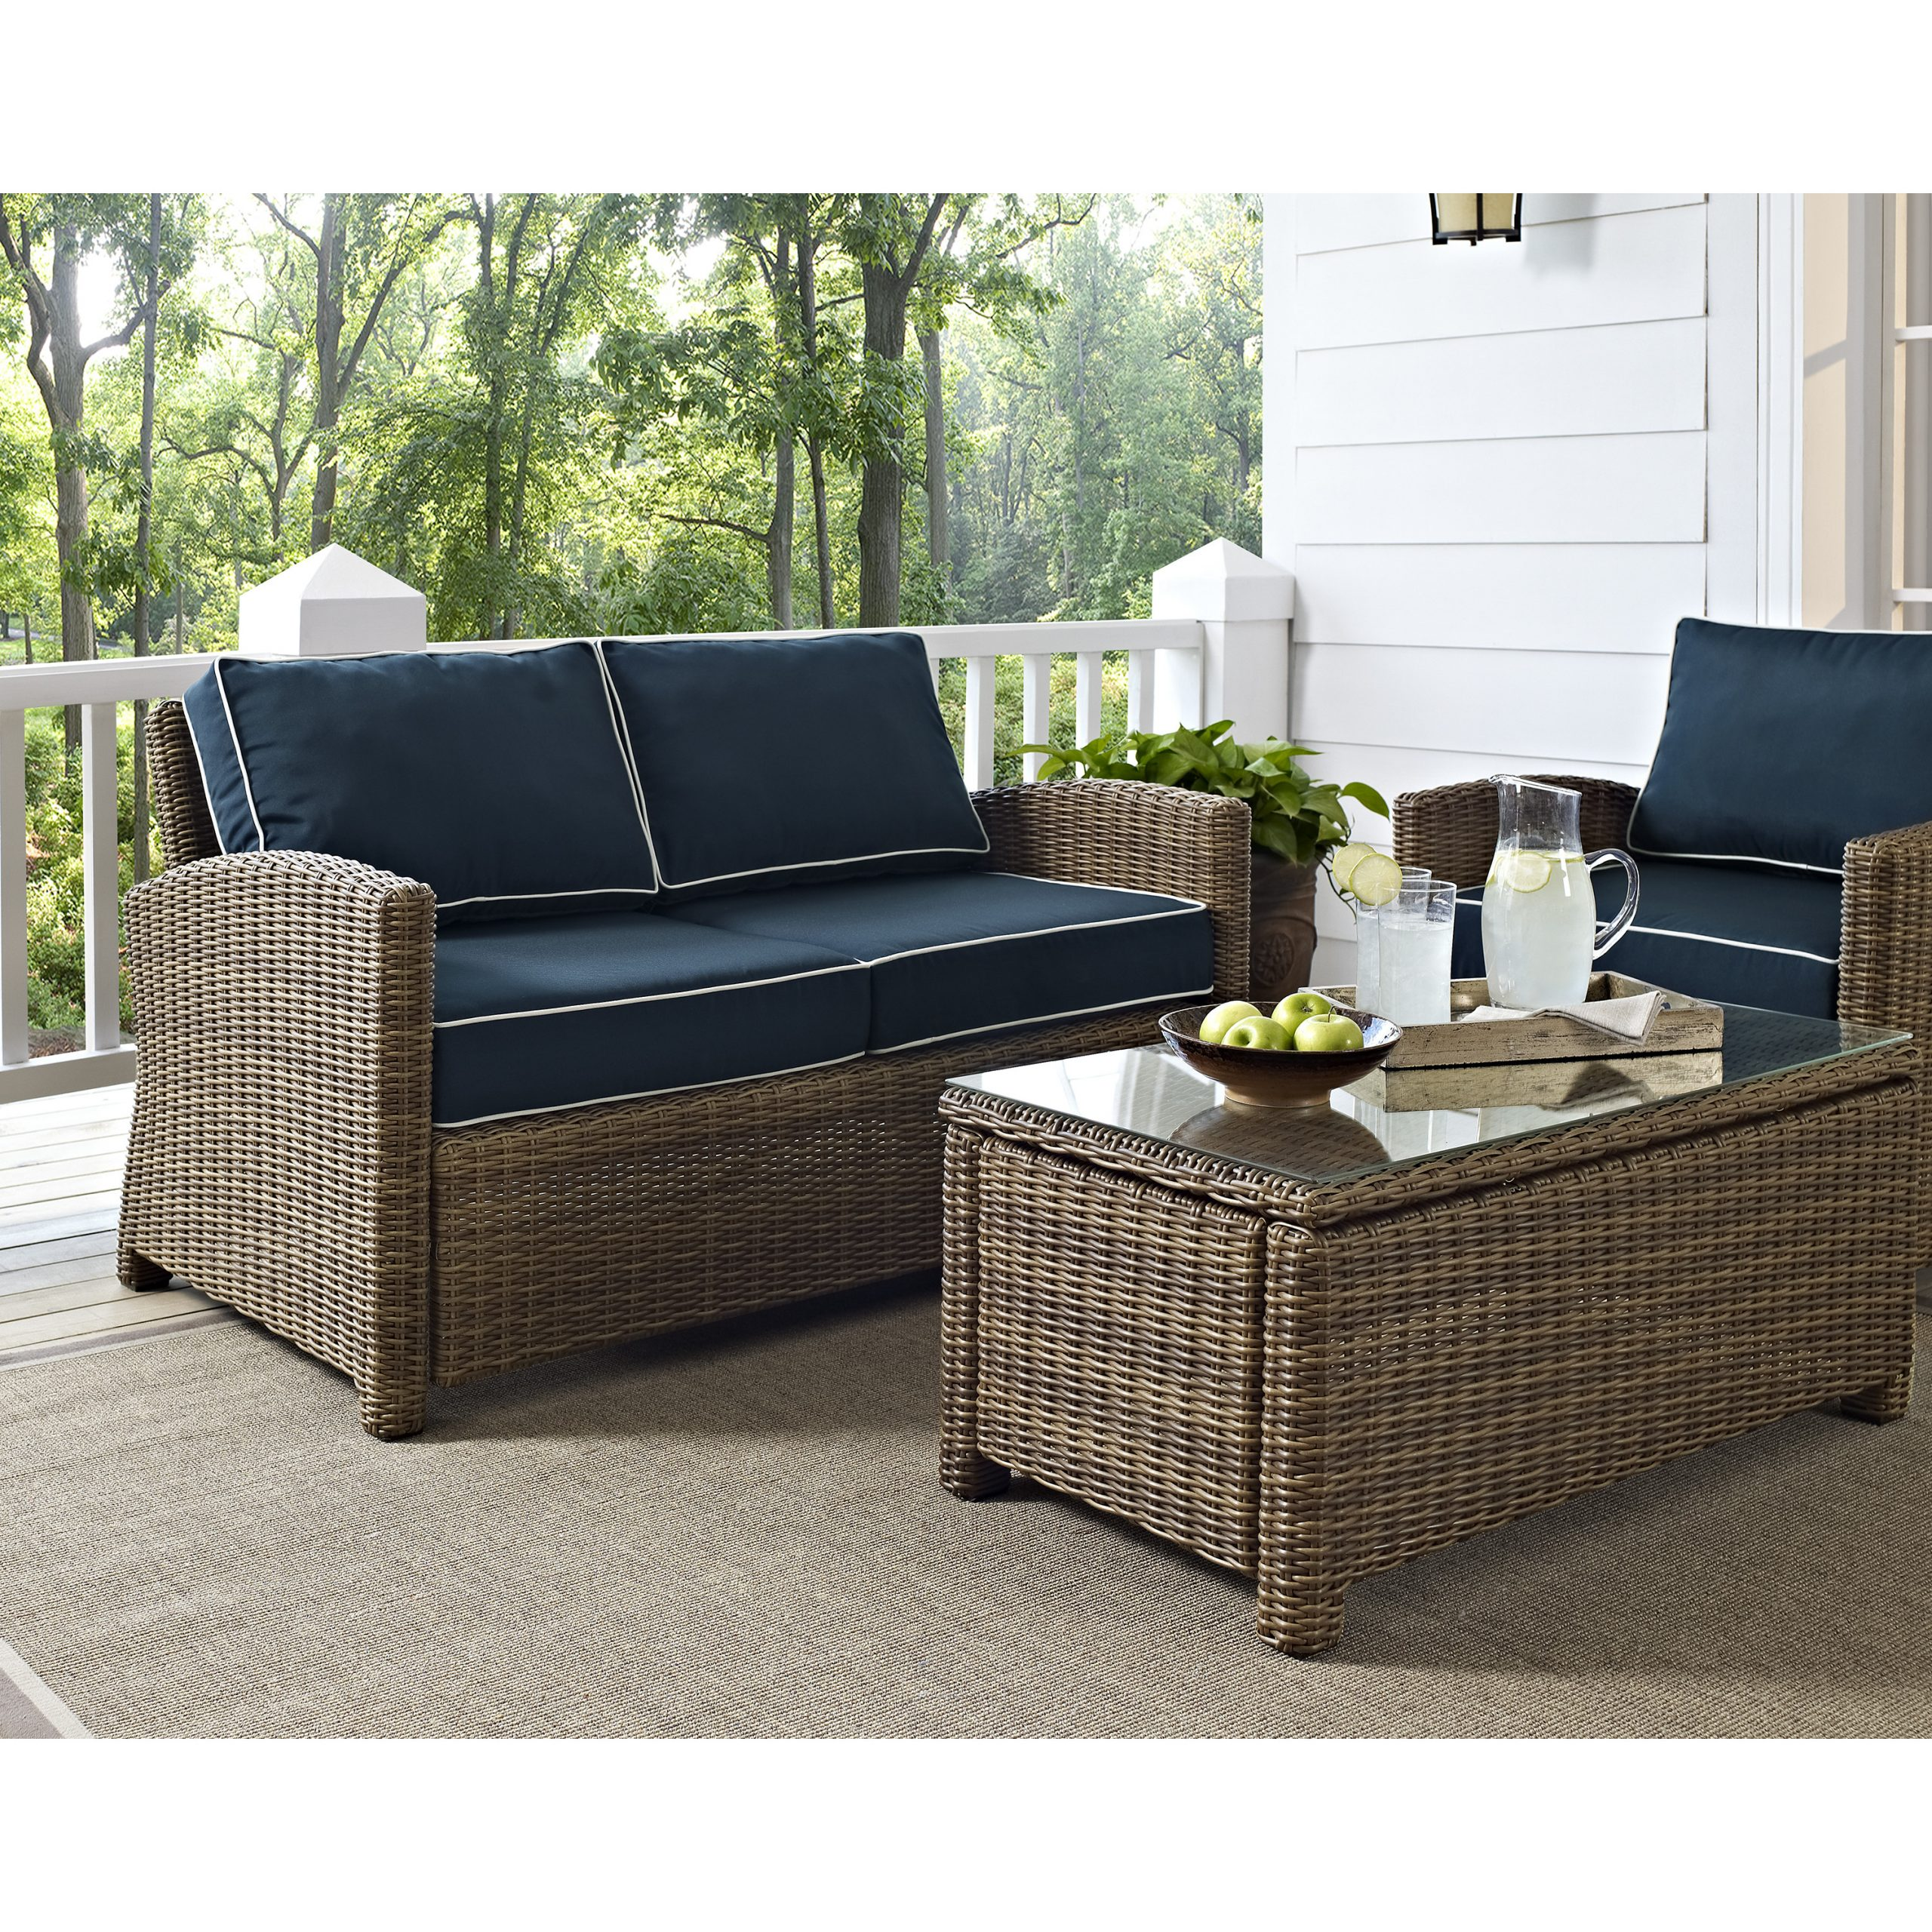 Famous Furniture: Mesmerizing Wicker Loveseat For Outdoor Or Indoor Intended For Lawson Wicker Loveseats With Cushions (View 11 of 25)